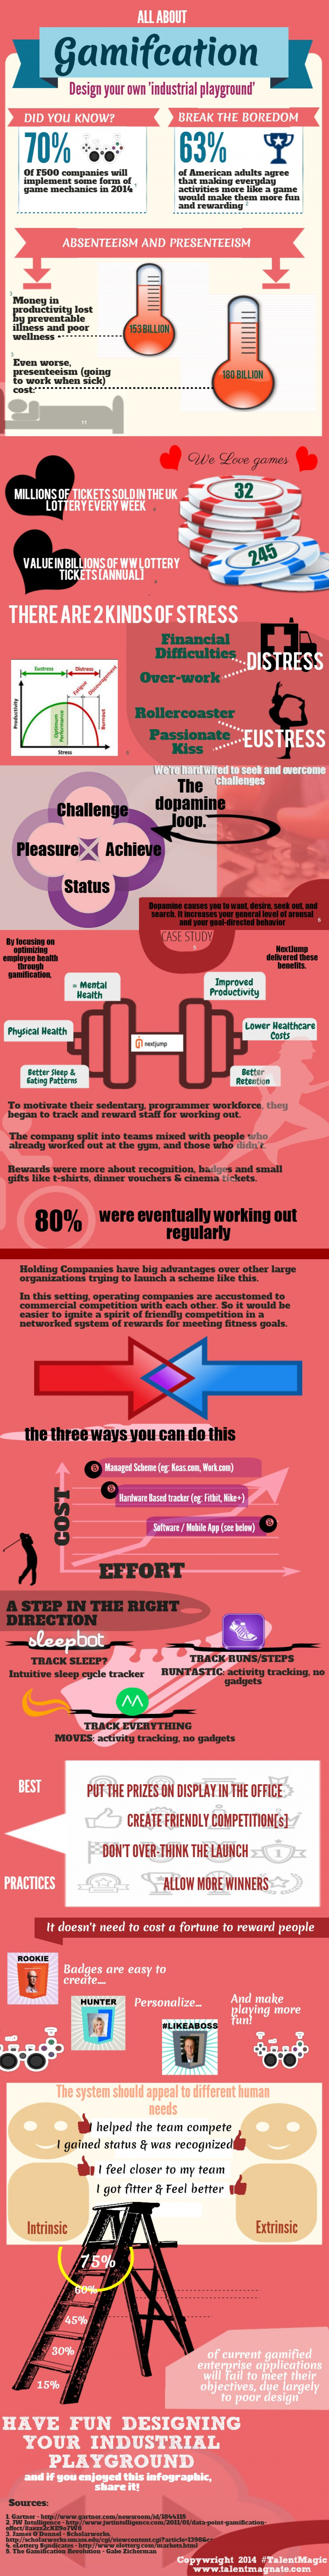 Gamification @ Work: Design your industrial playground Infographic